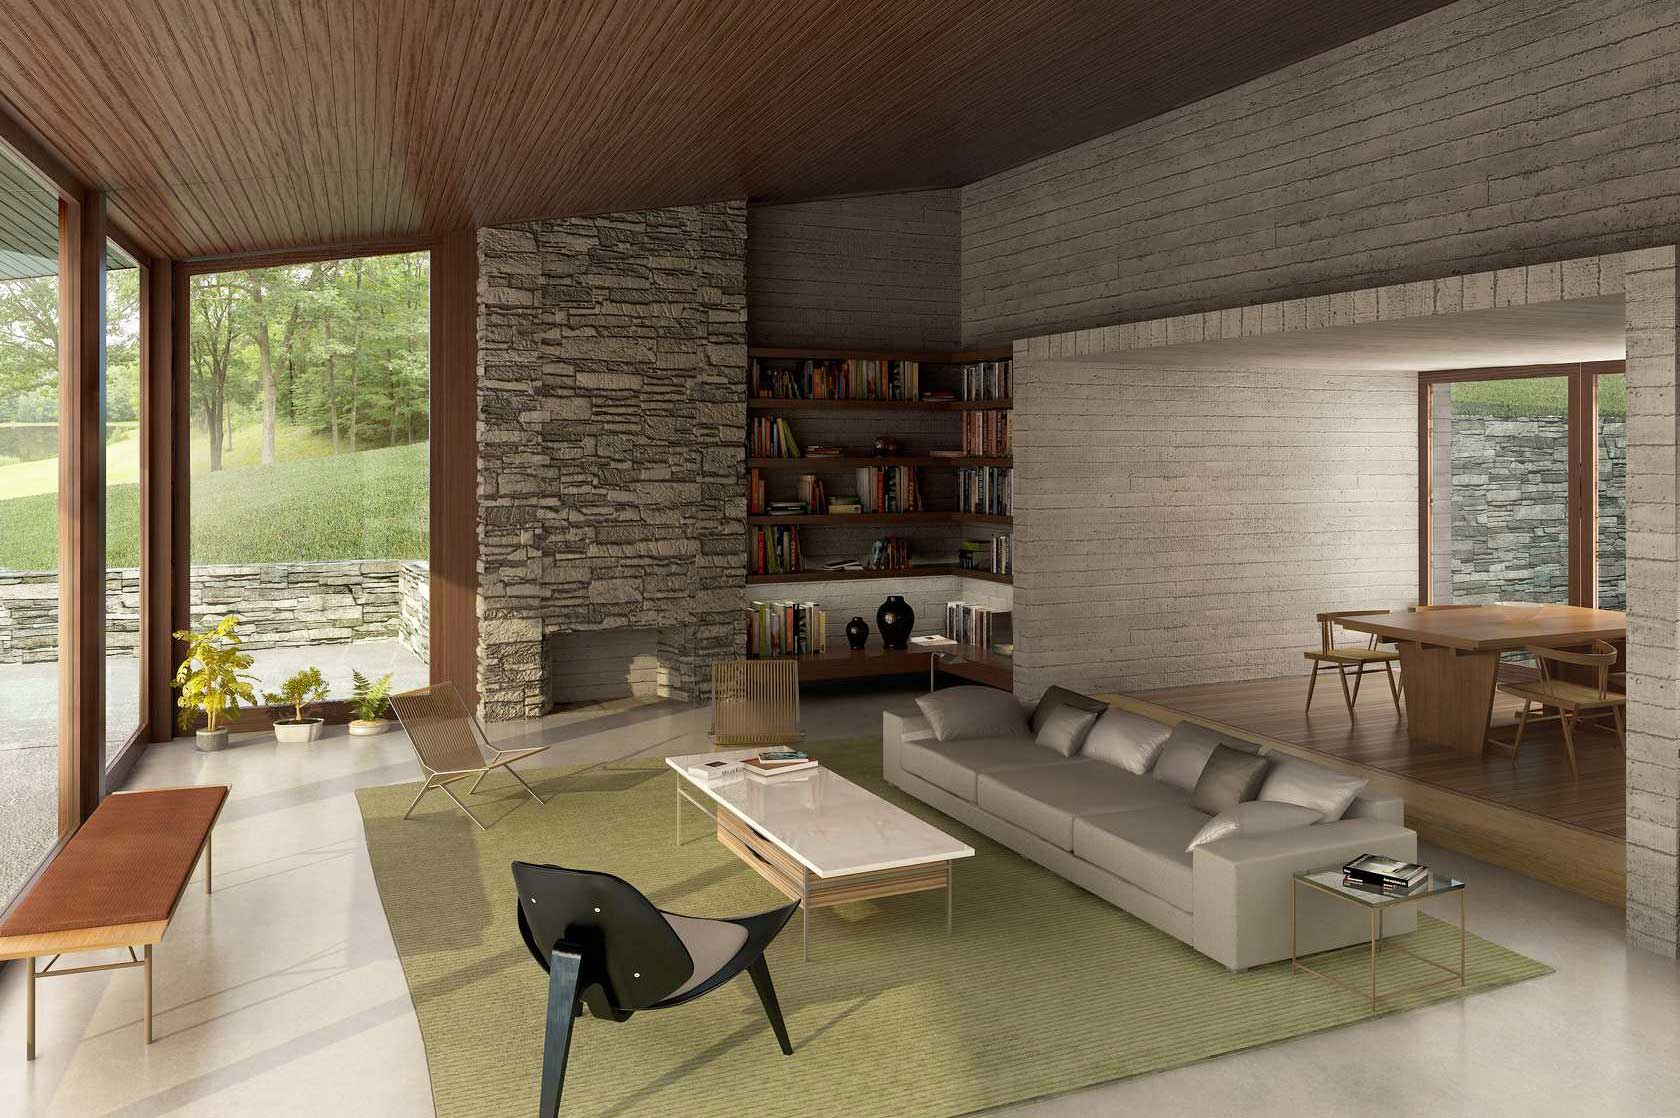 Aklitsch / Gardner Architects, burnt old house, Gambaccini Residence, masonry basement, dry-stone wall, 'dematerialization' concept, Hudson River, Upstate New York, glazed wall